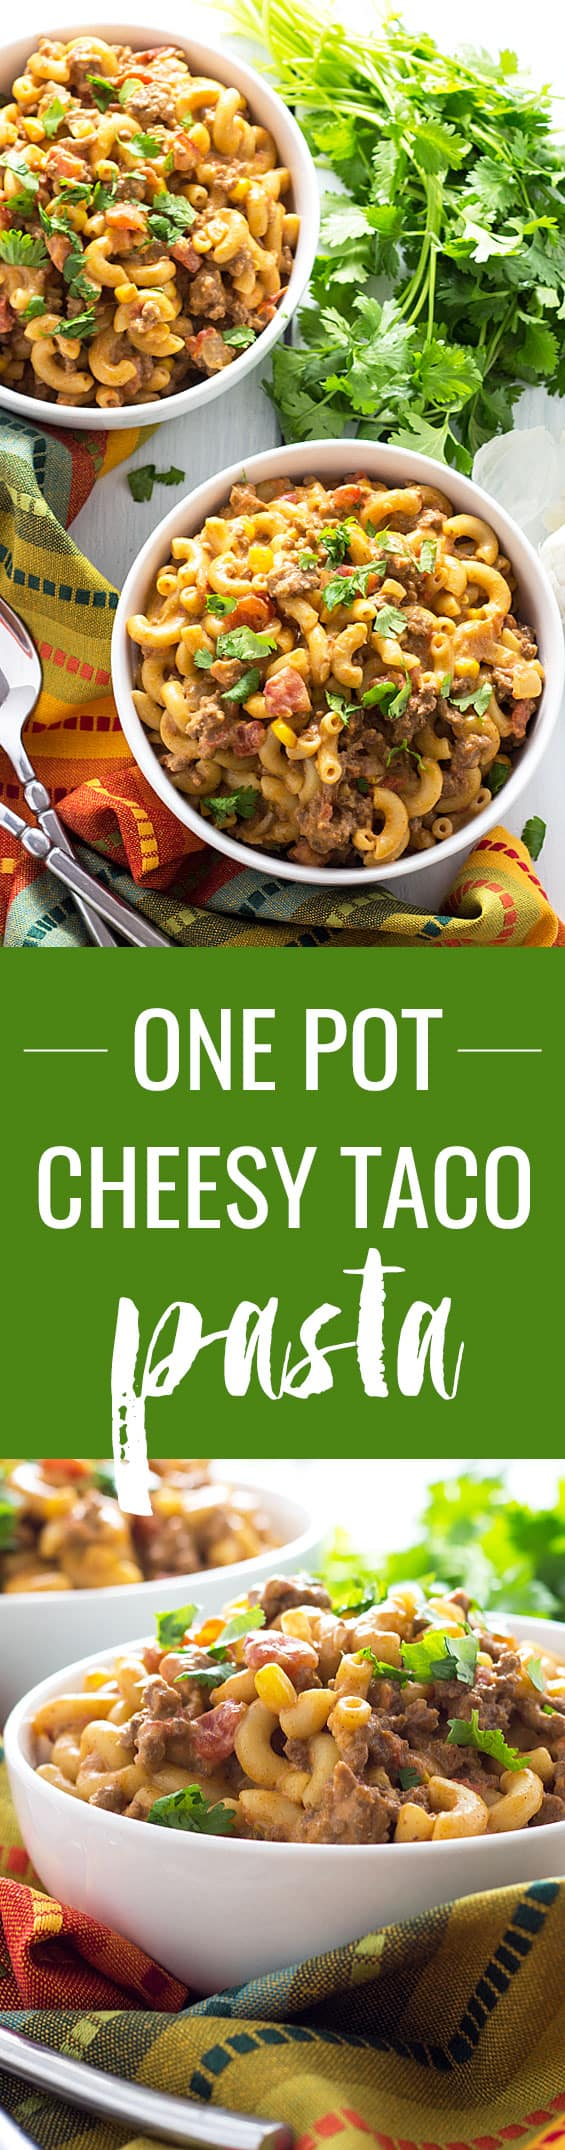 ONE POT Cheesy Taco Pasta - Beefy, creamy and cheesy taco pasta in 30 minutes!